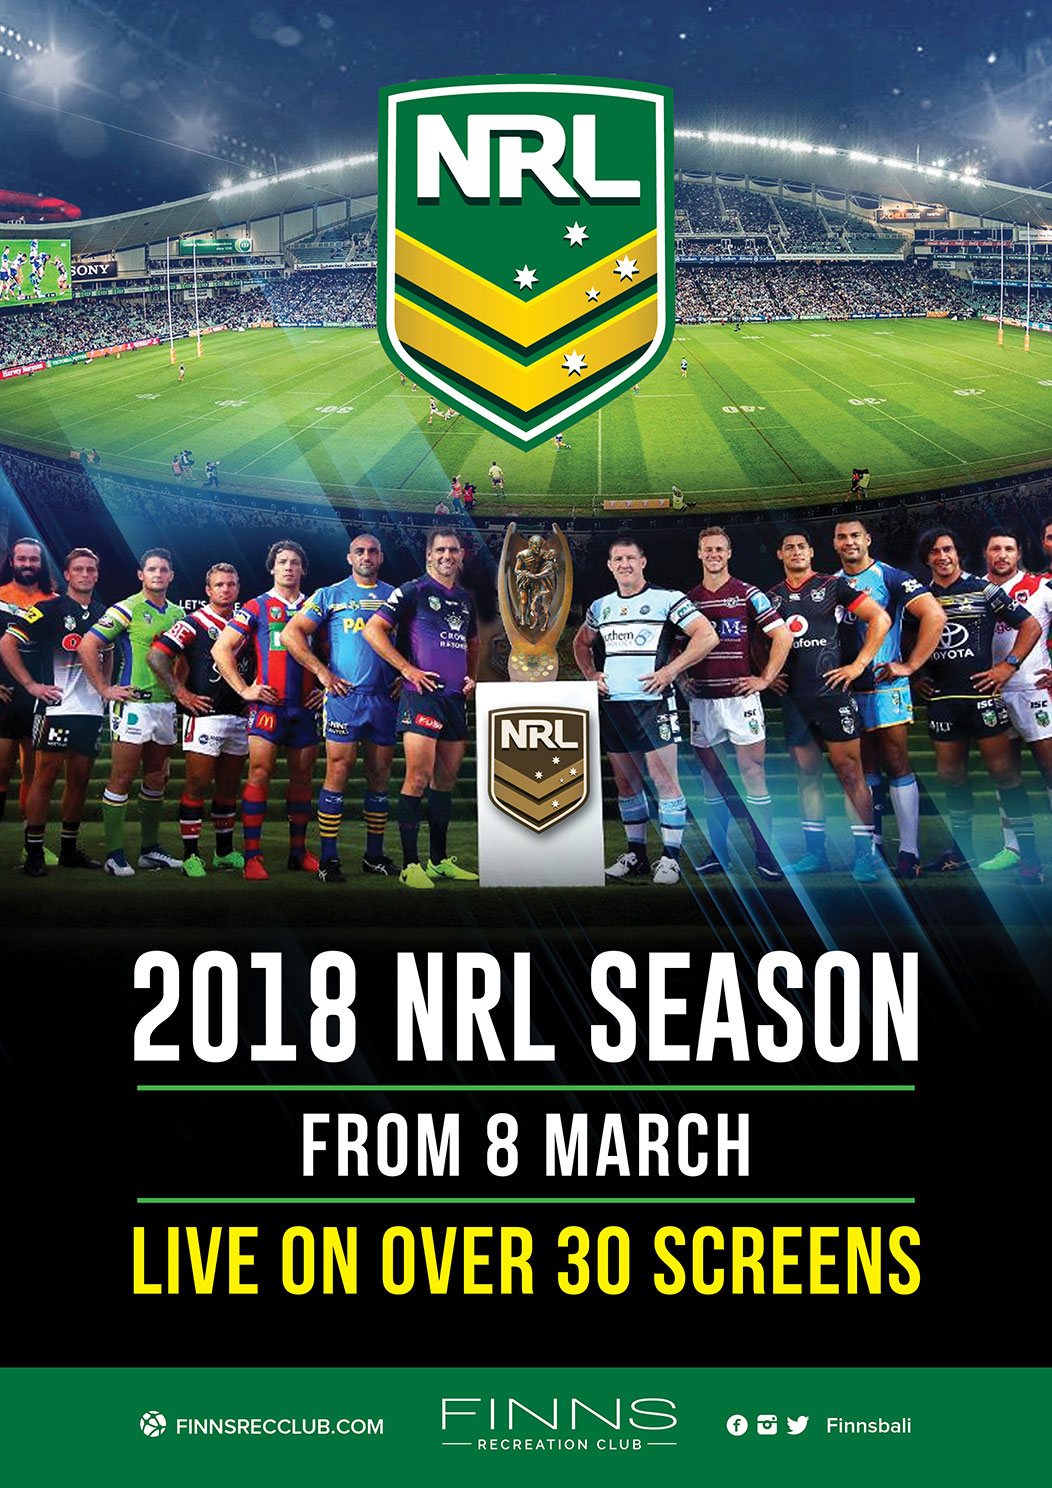 NRL WHATS ON